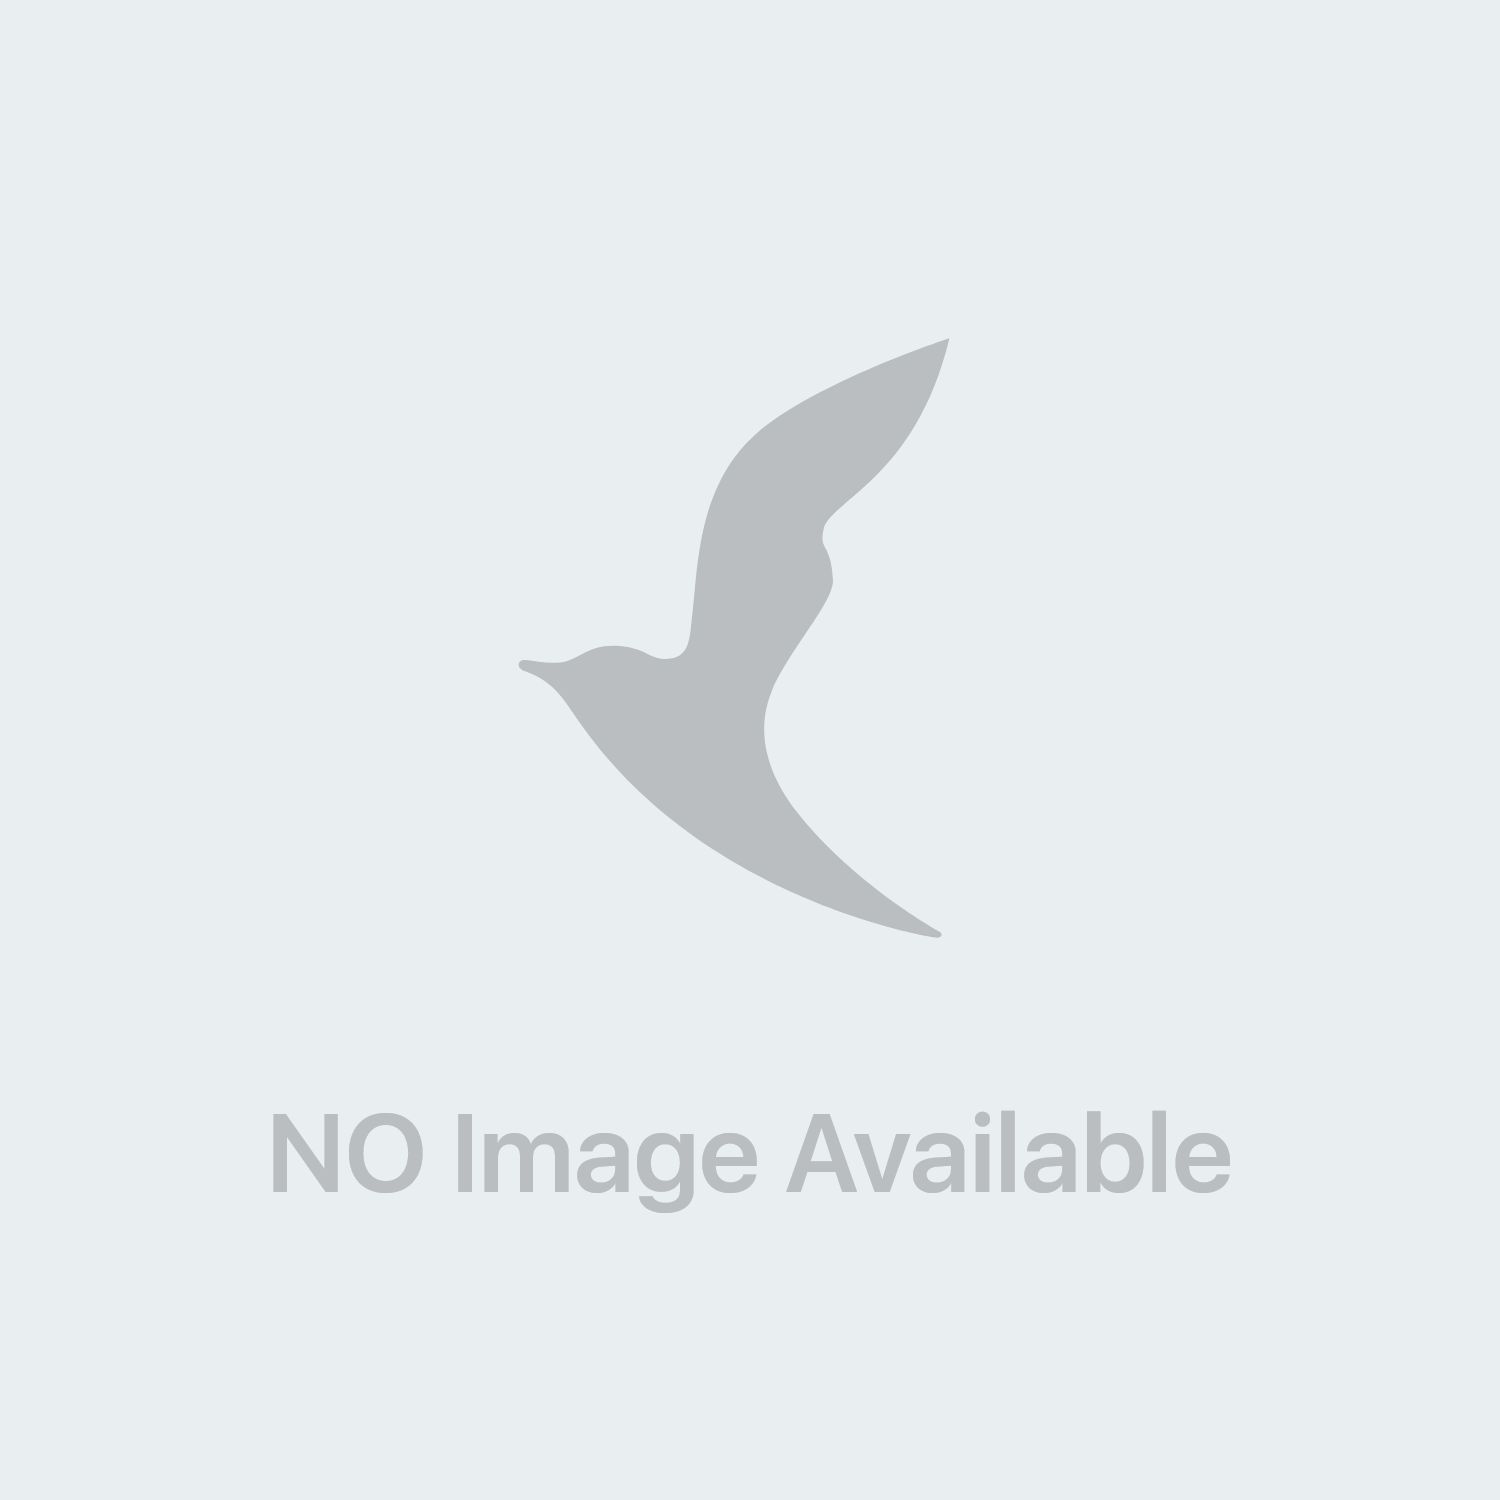 Esther Kuten Oil Shampoo Sebonormalizzante 150 Ml